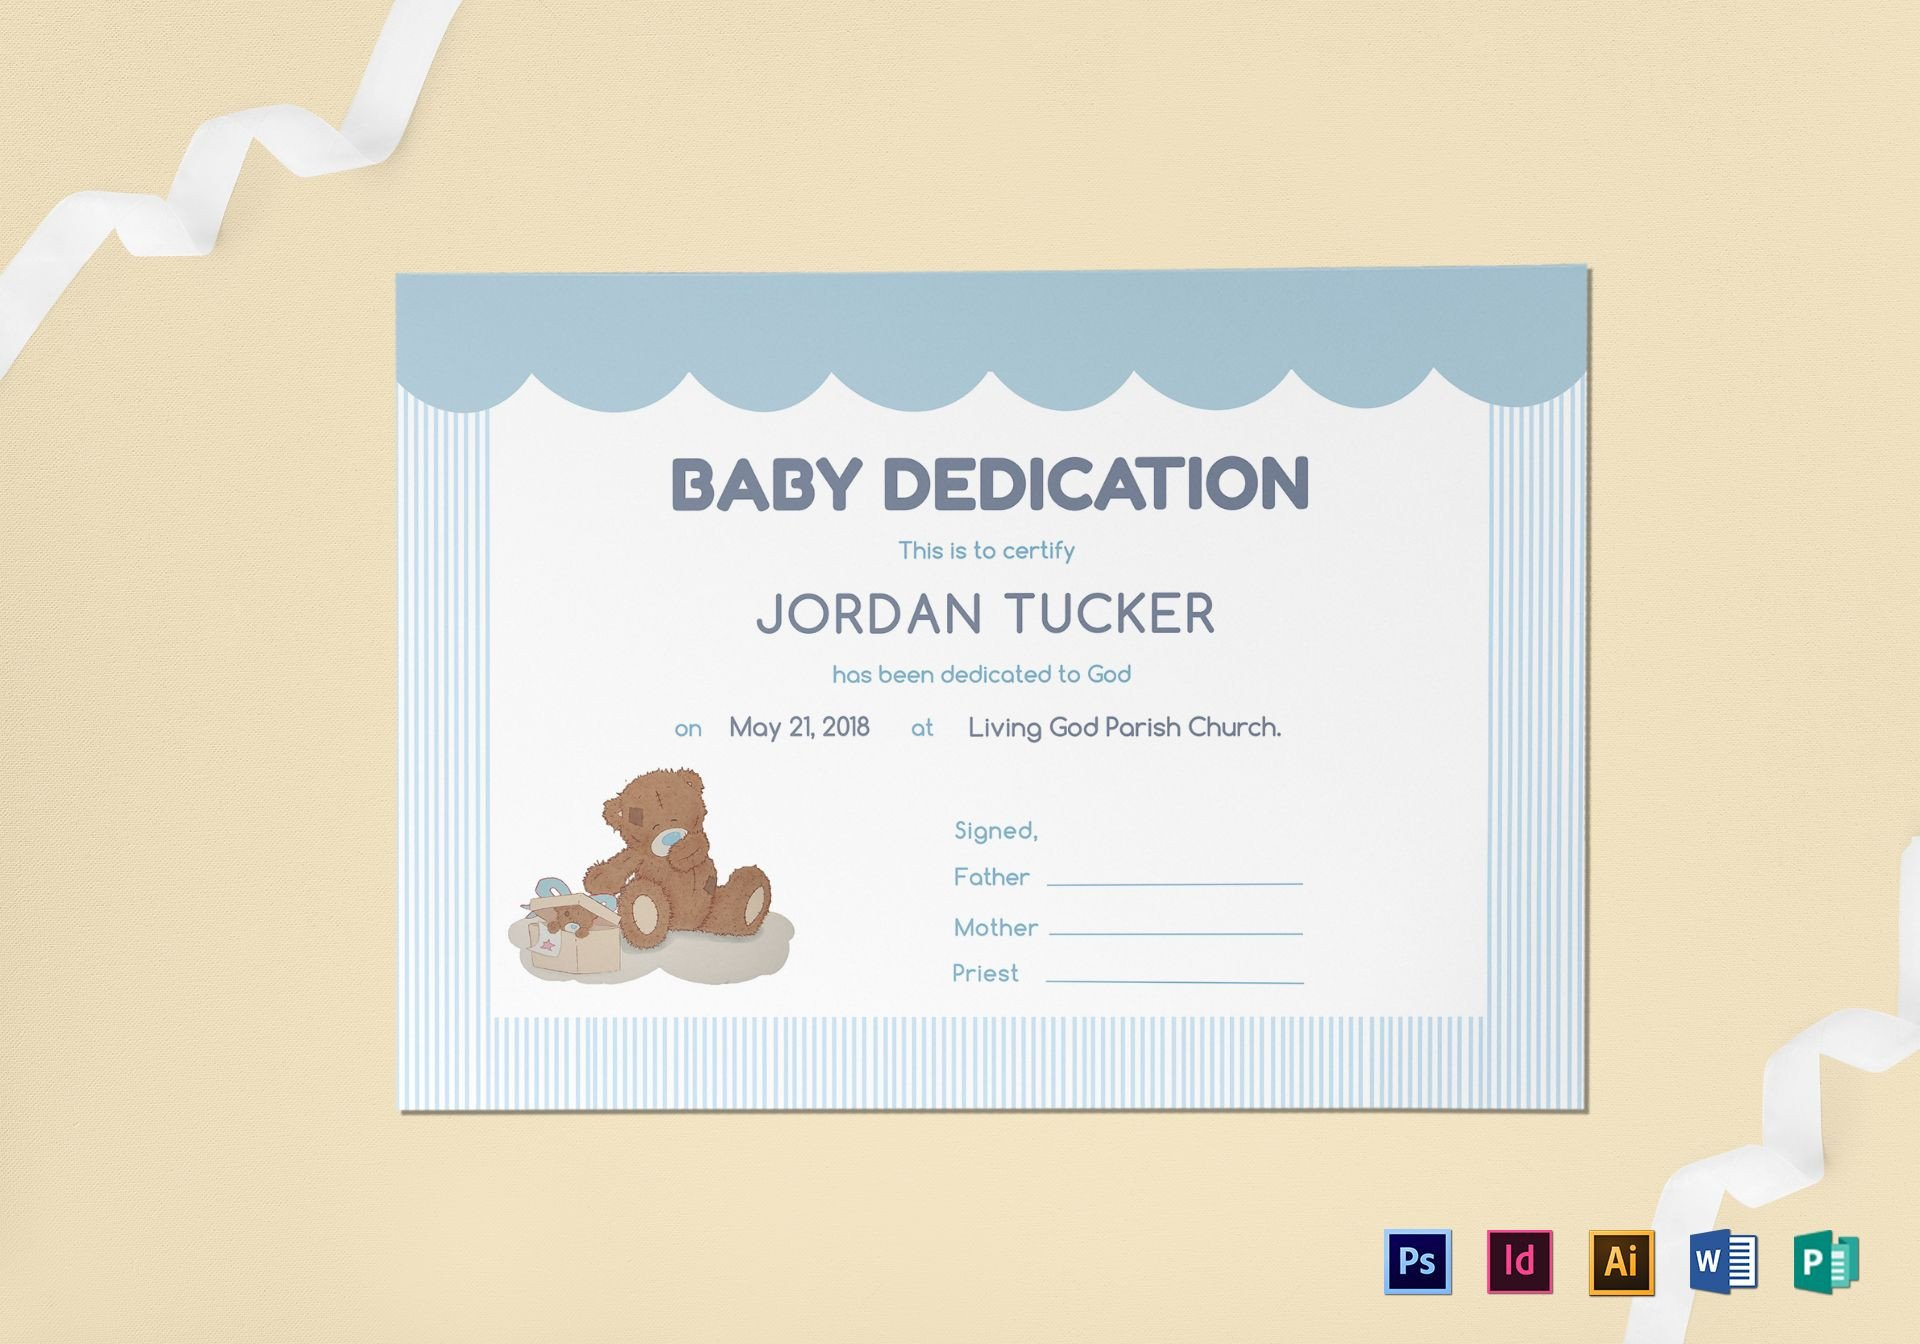 Baby Dedication Certificate Template Baby Dedication Certificate Design Template In Psd Word